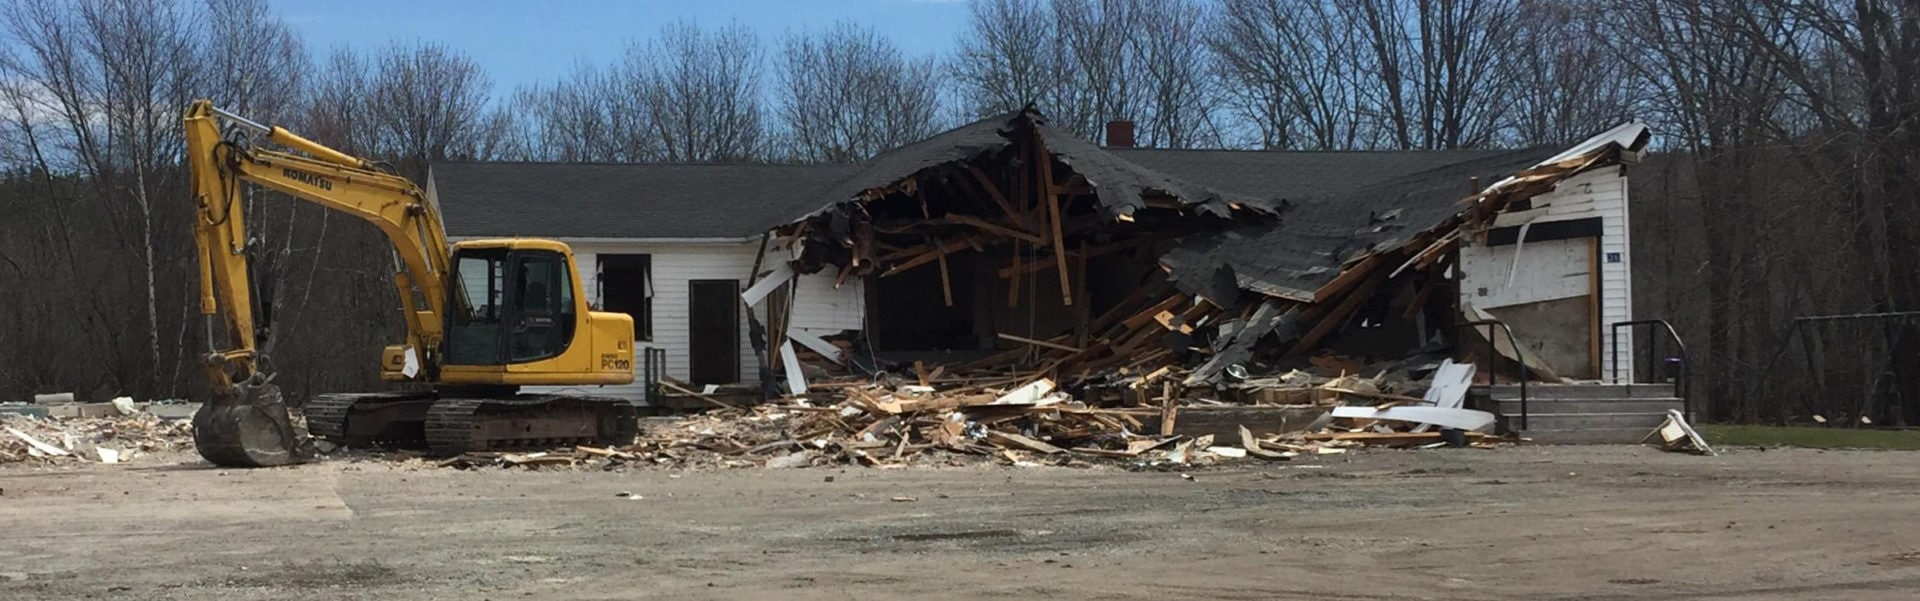 Nauwidgewauk Demolition May 2019 New Brunswick